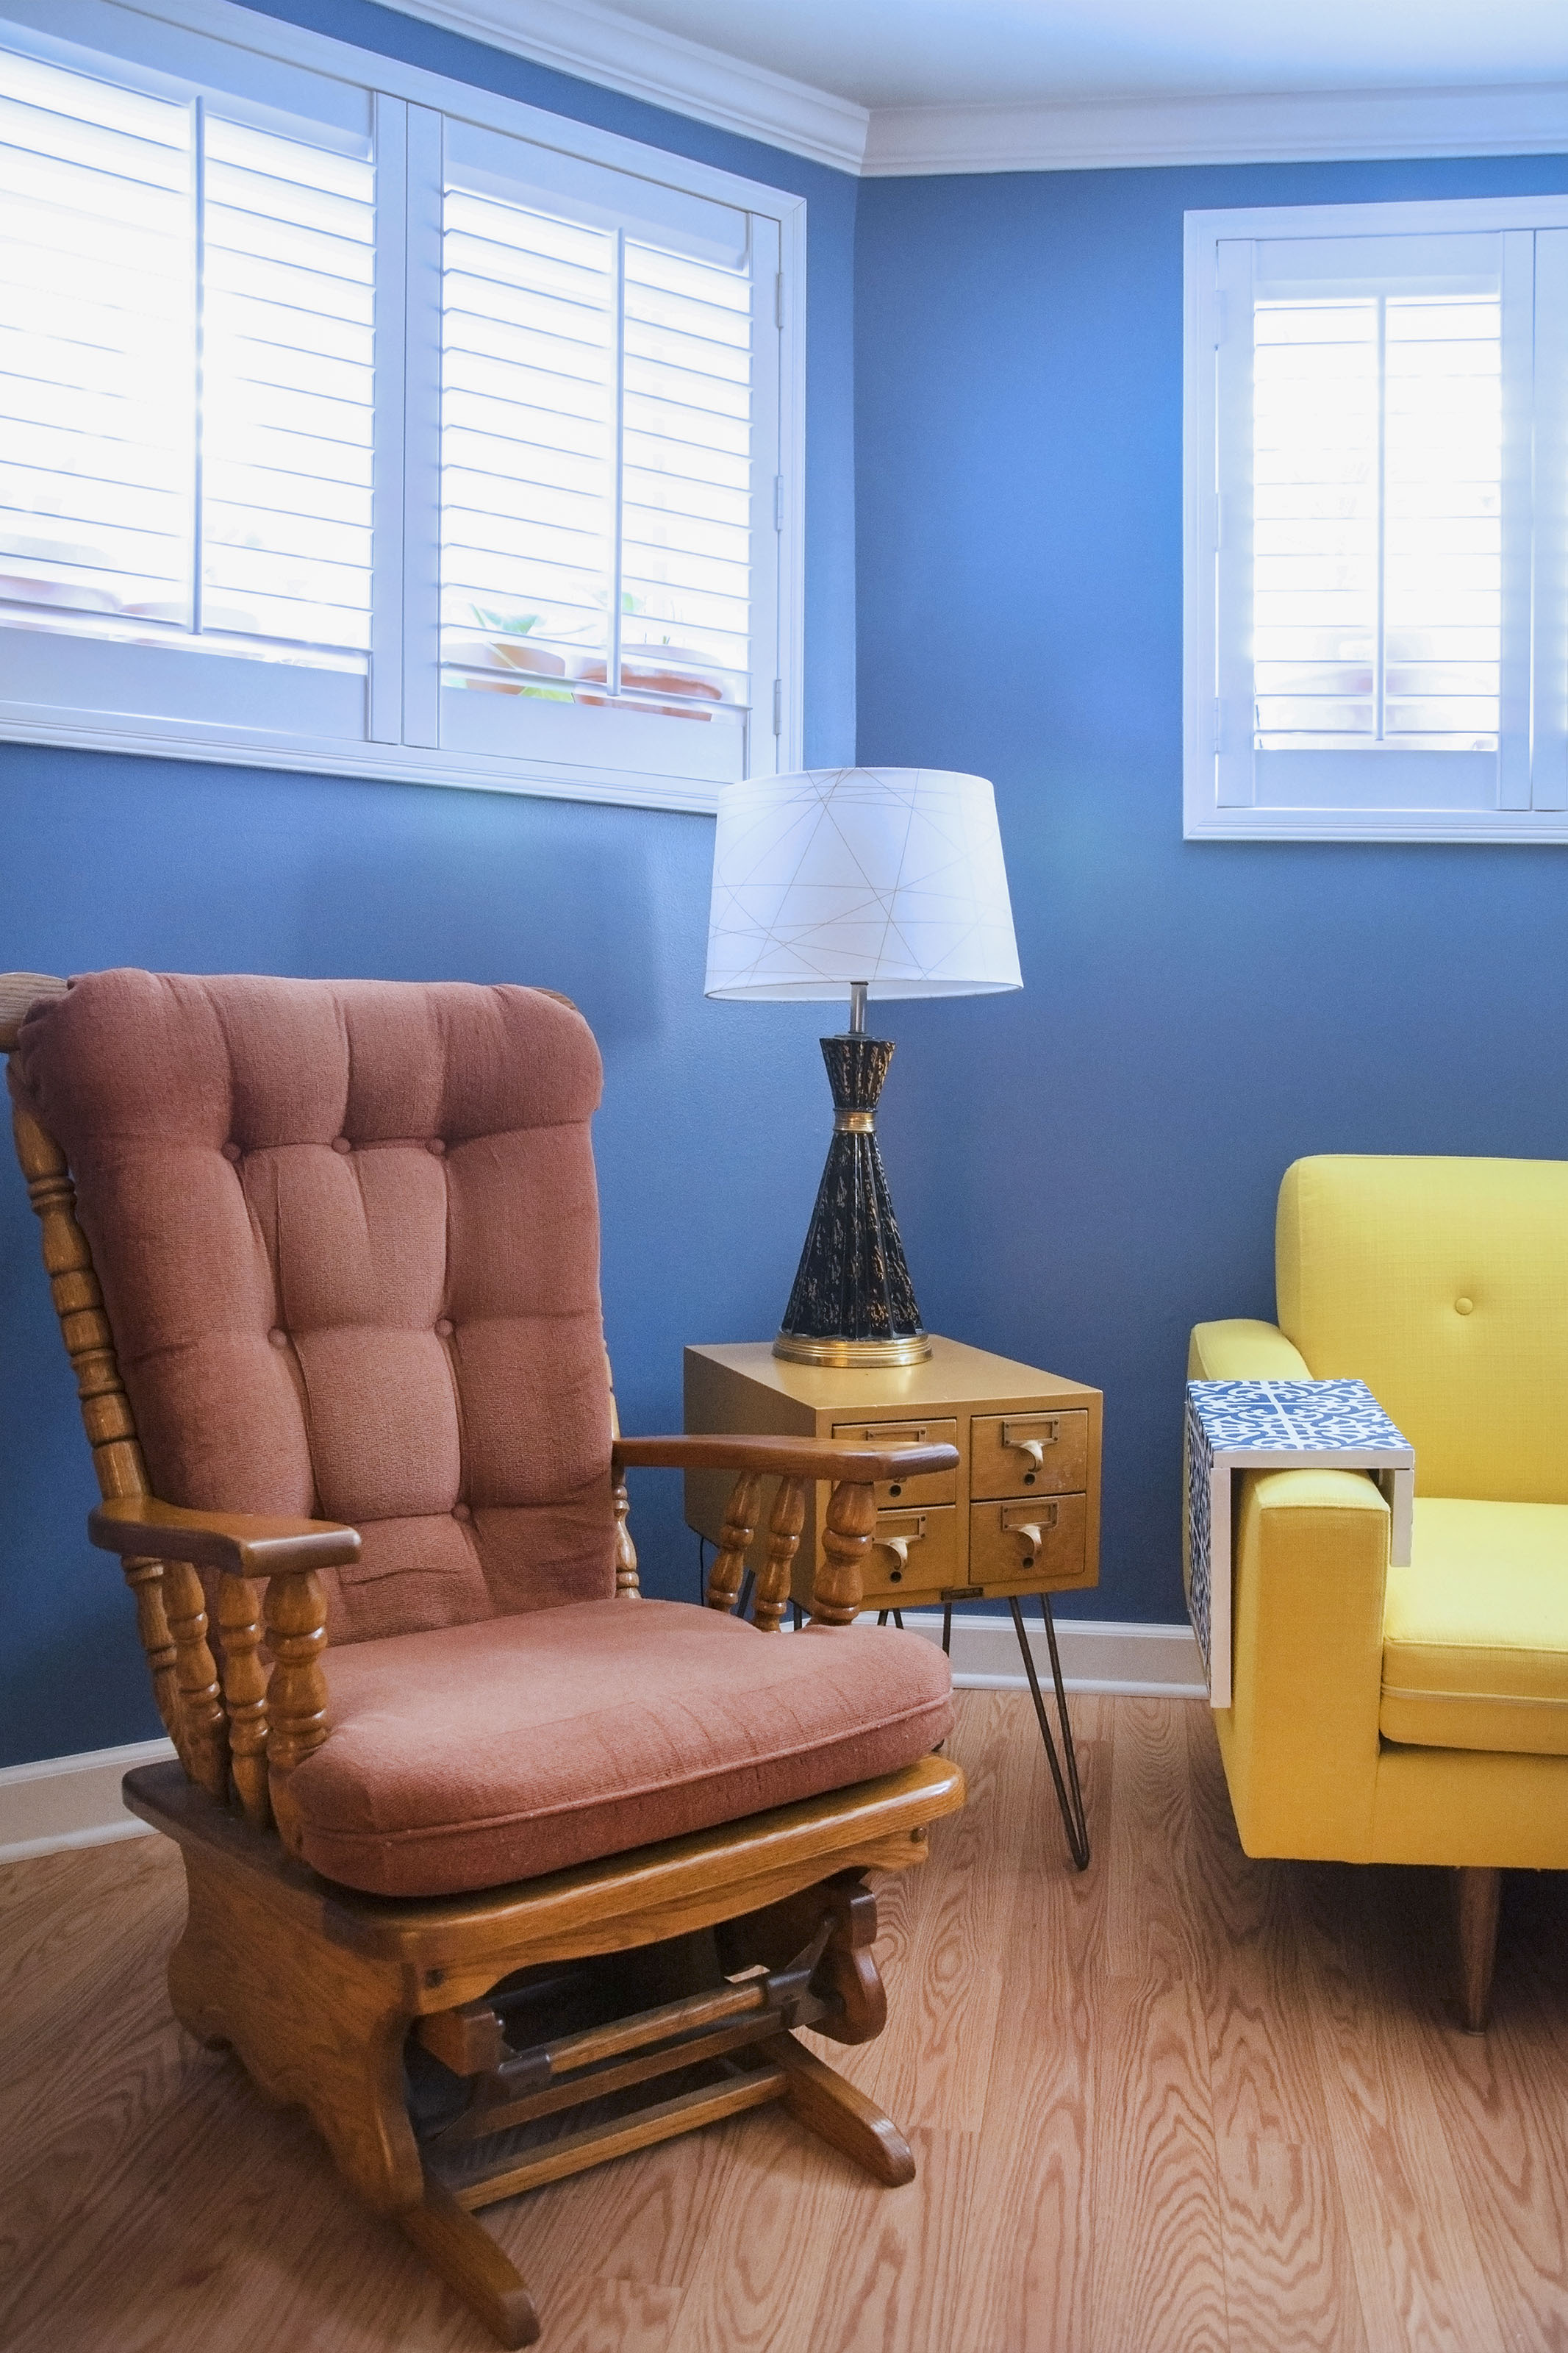 We love working on projects like this where beautiful paint colors come together with excellent interior design and our professional painting skills to deliver a dramatic home transformation. -